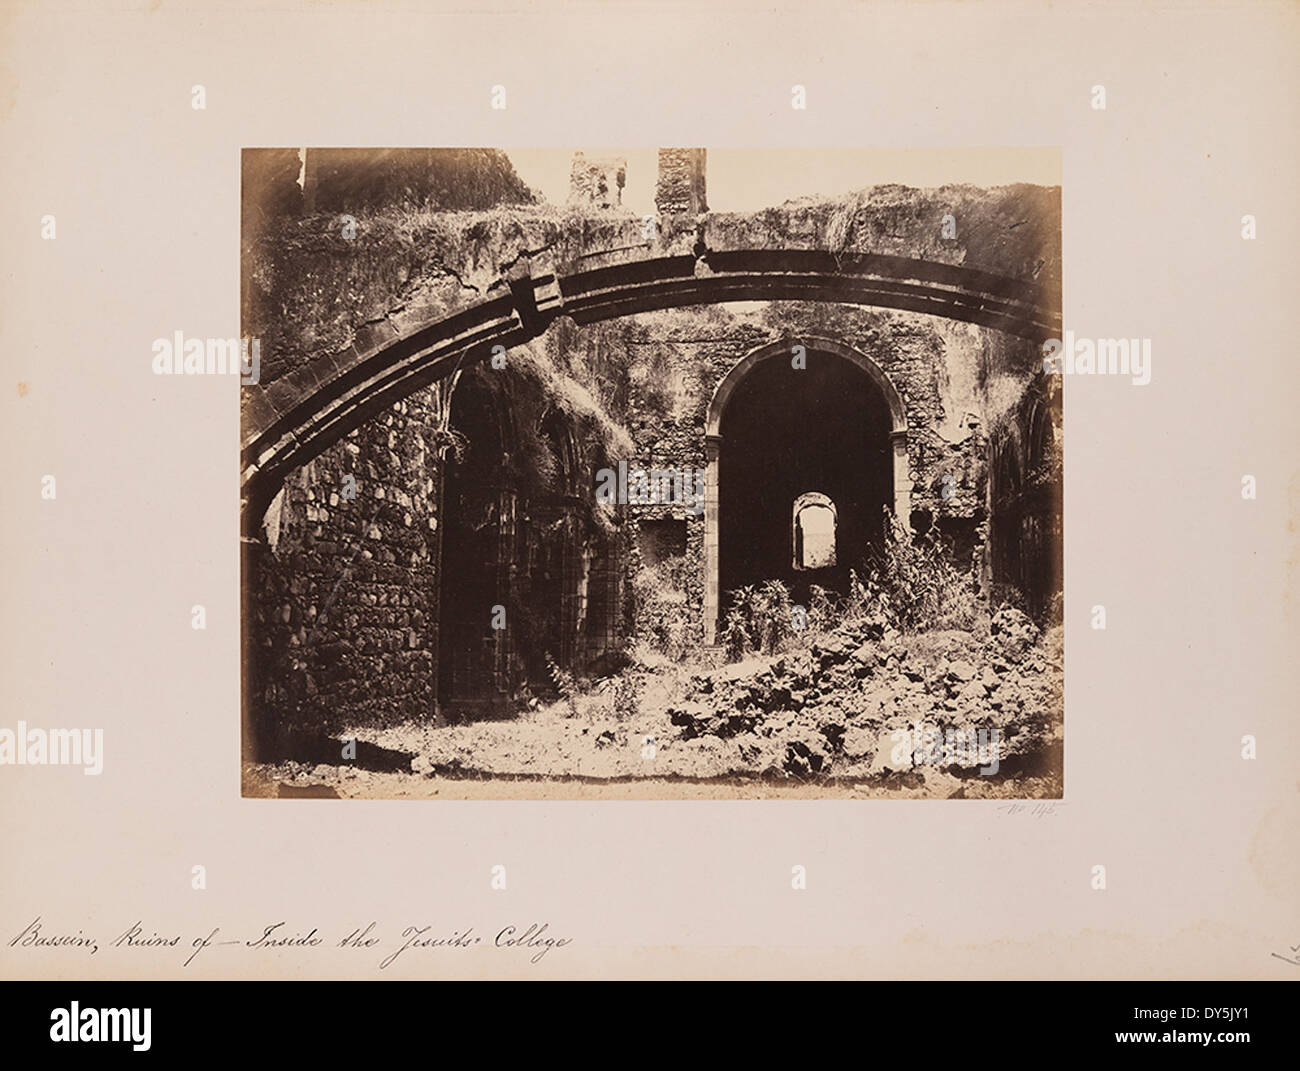 Bassein, Ruins of - Inside the Jesuits College - Stock Image